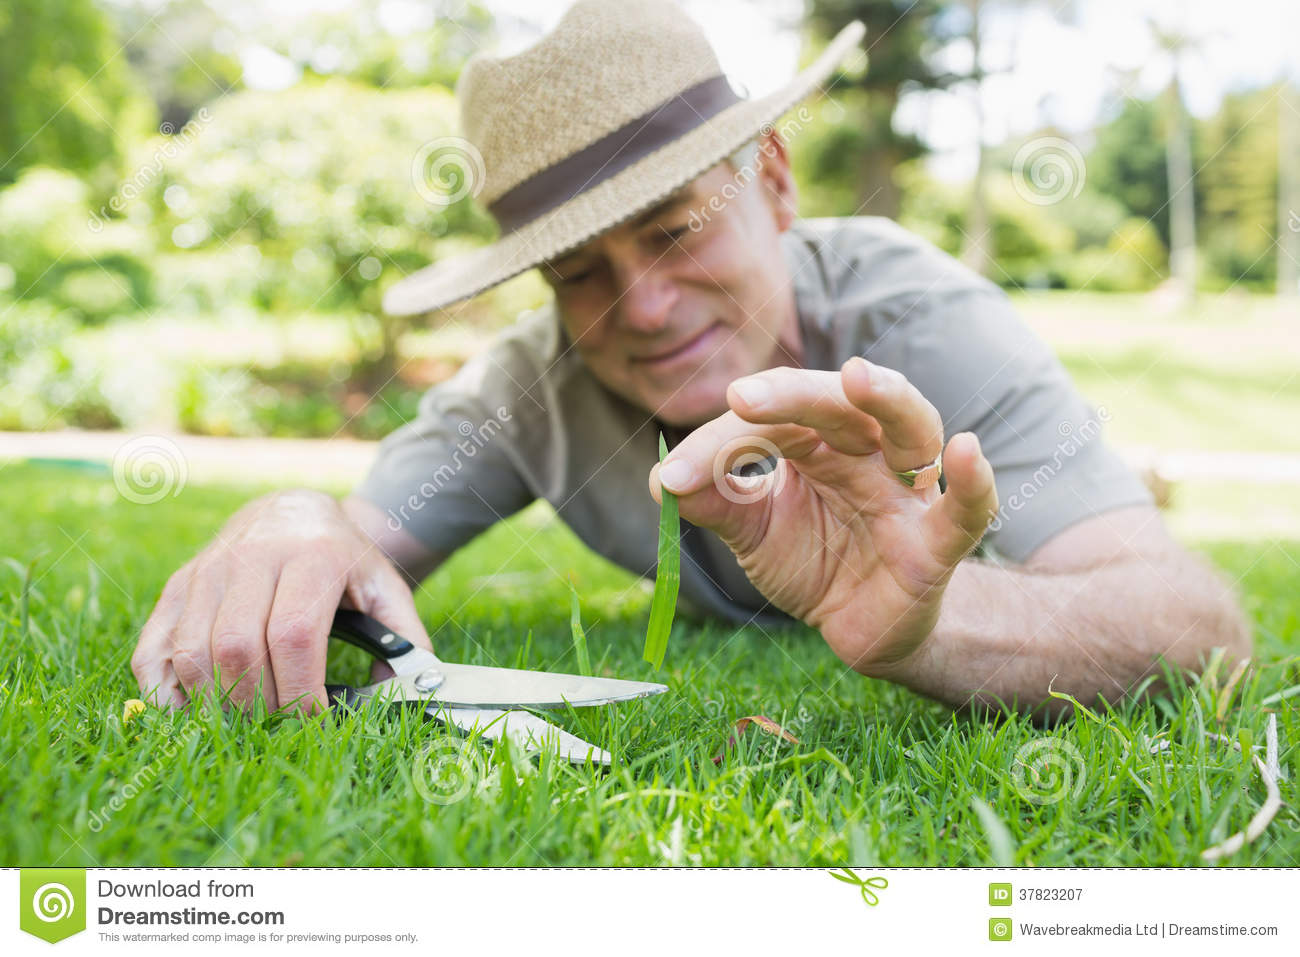 Man Cutting Grass With Scissors Royalty Free Stock